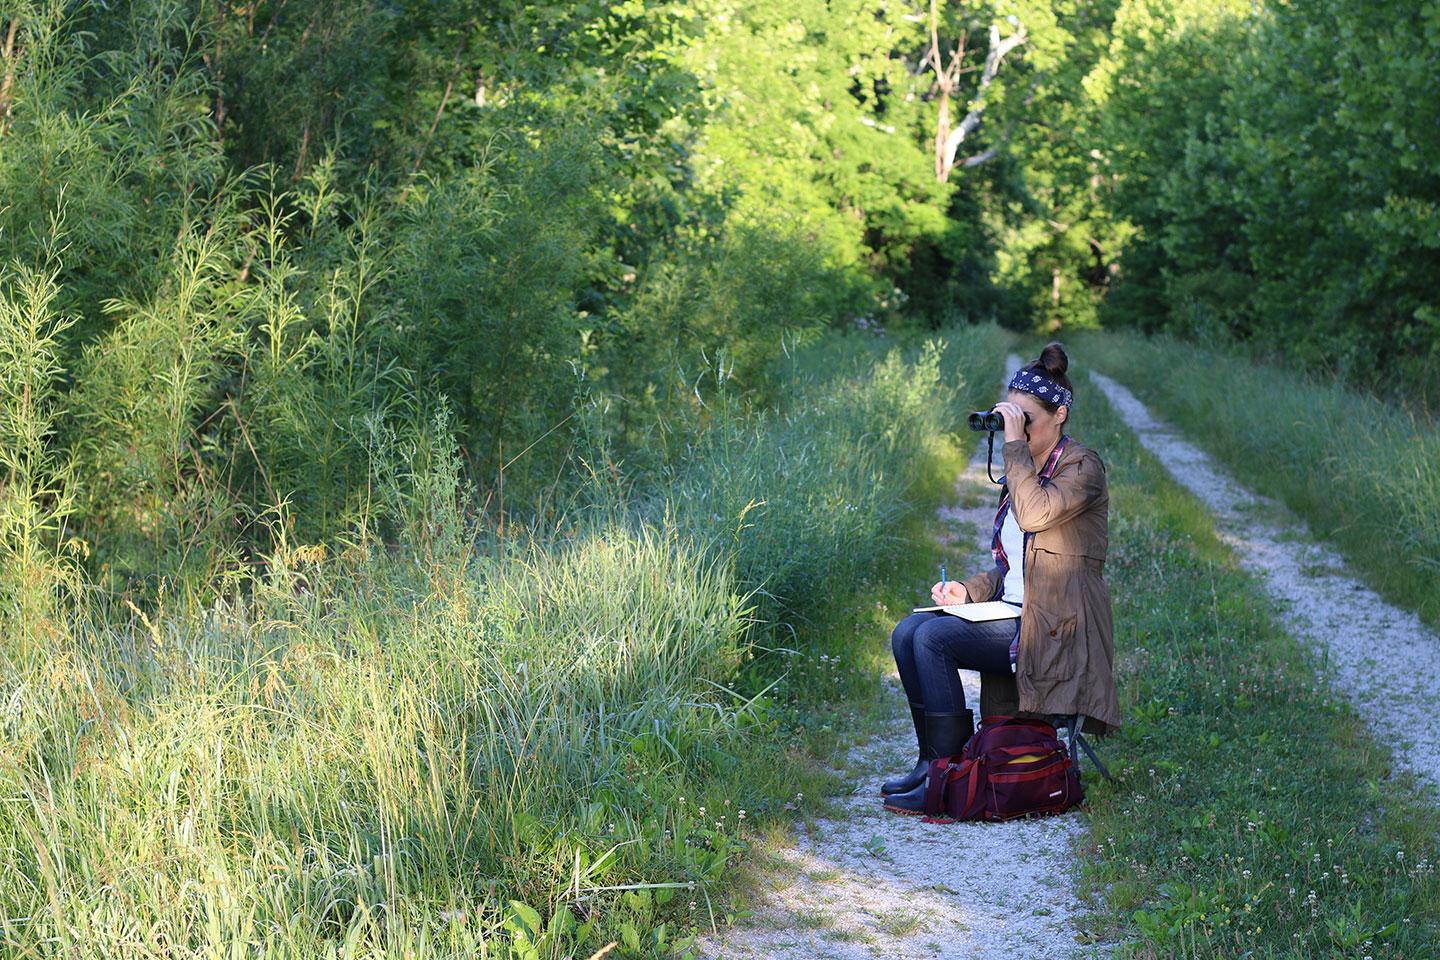 Warnick's necessities include binoculars and a stool. They let her capture the infinite details in field marks, while allowing her to stay comfy and keep a steady hand over long hours of sketching. Shae Warnick